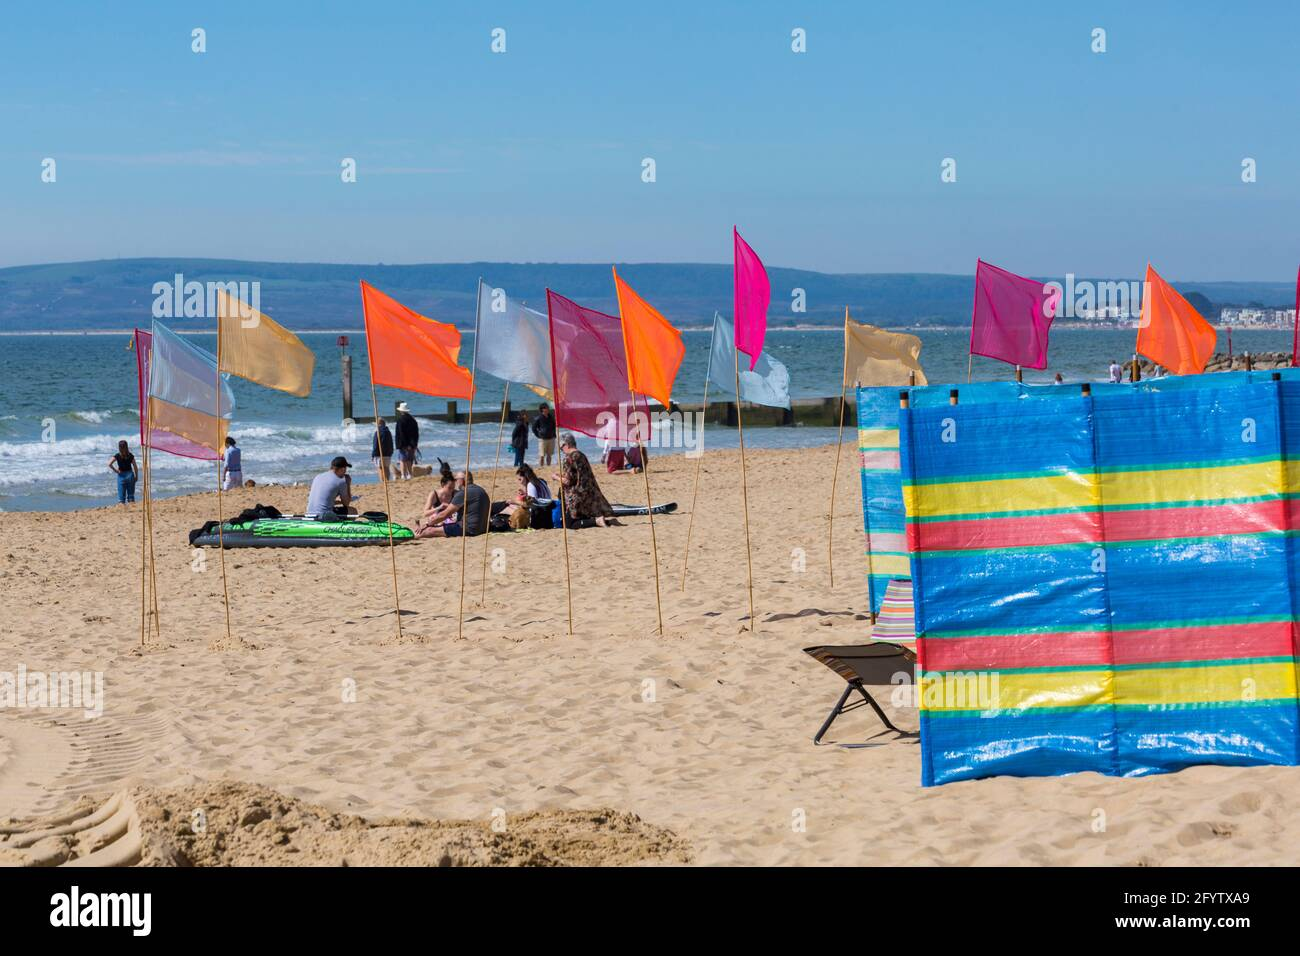 Bournemouth, Dorset UK. 30th May 2021. UK weather: hot and sunny at Bournemouth beaches, as people flock to the seaside to enjoy the sunshine for Bank Holiday Sunday, as more people take staycations because of restrictions on foreign travel due to Covid.  Credit: Carolyn Jenkins/Alamy Live News Stock Photo